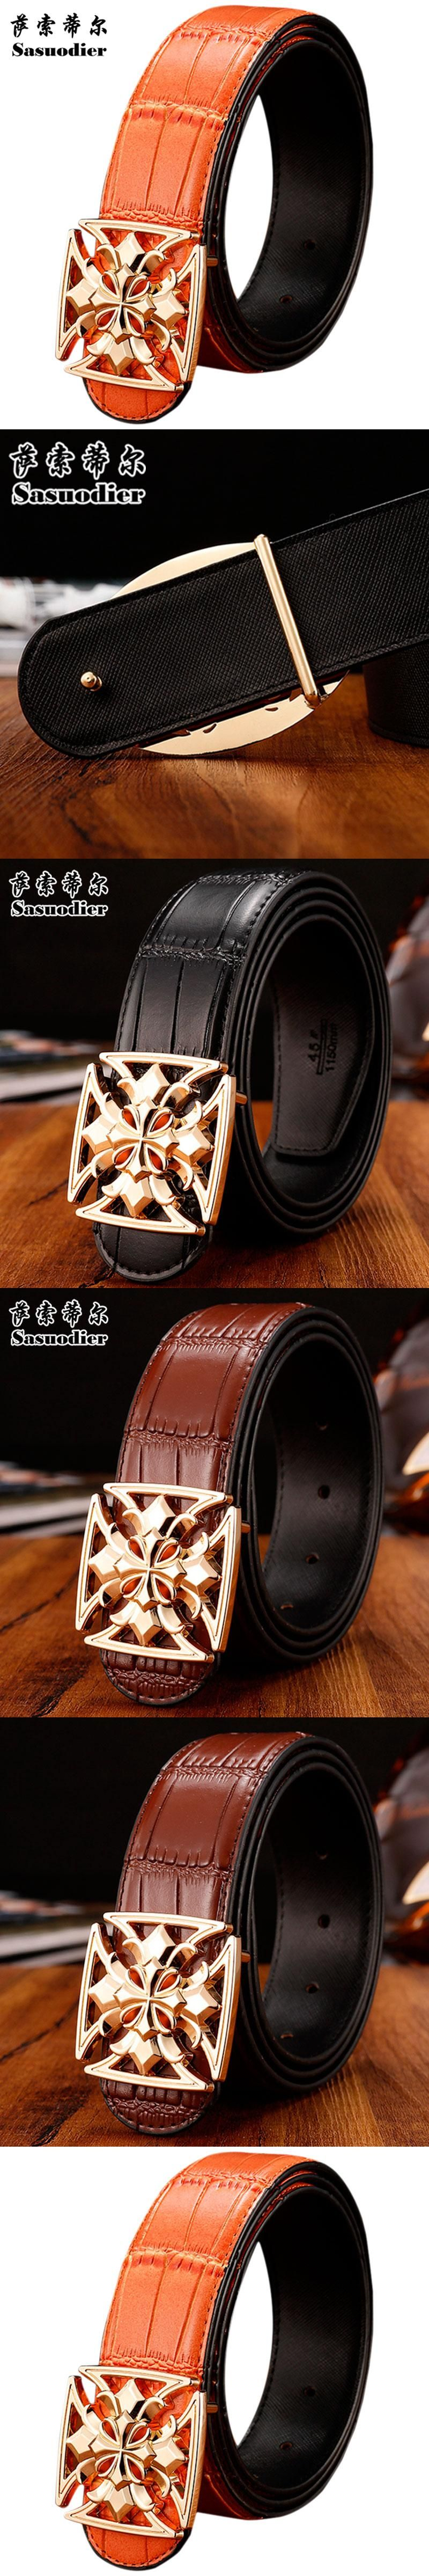 Luxury men belt leather alloy letters belt buckle Belts For Men buckle High  Quality Brand Designer 472166877f2